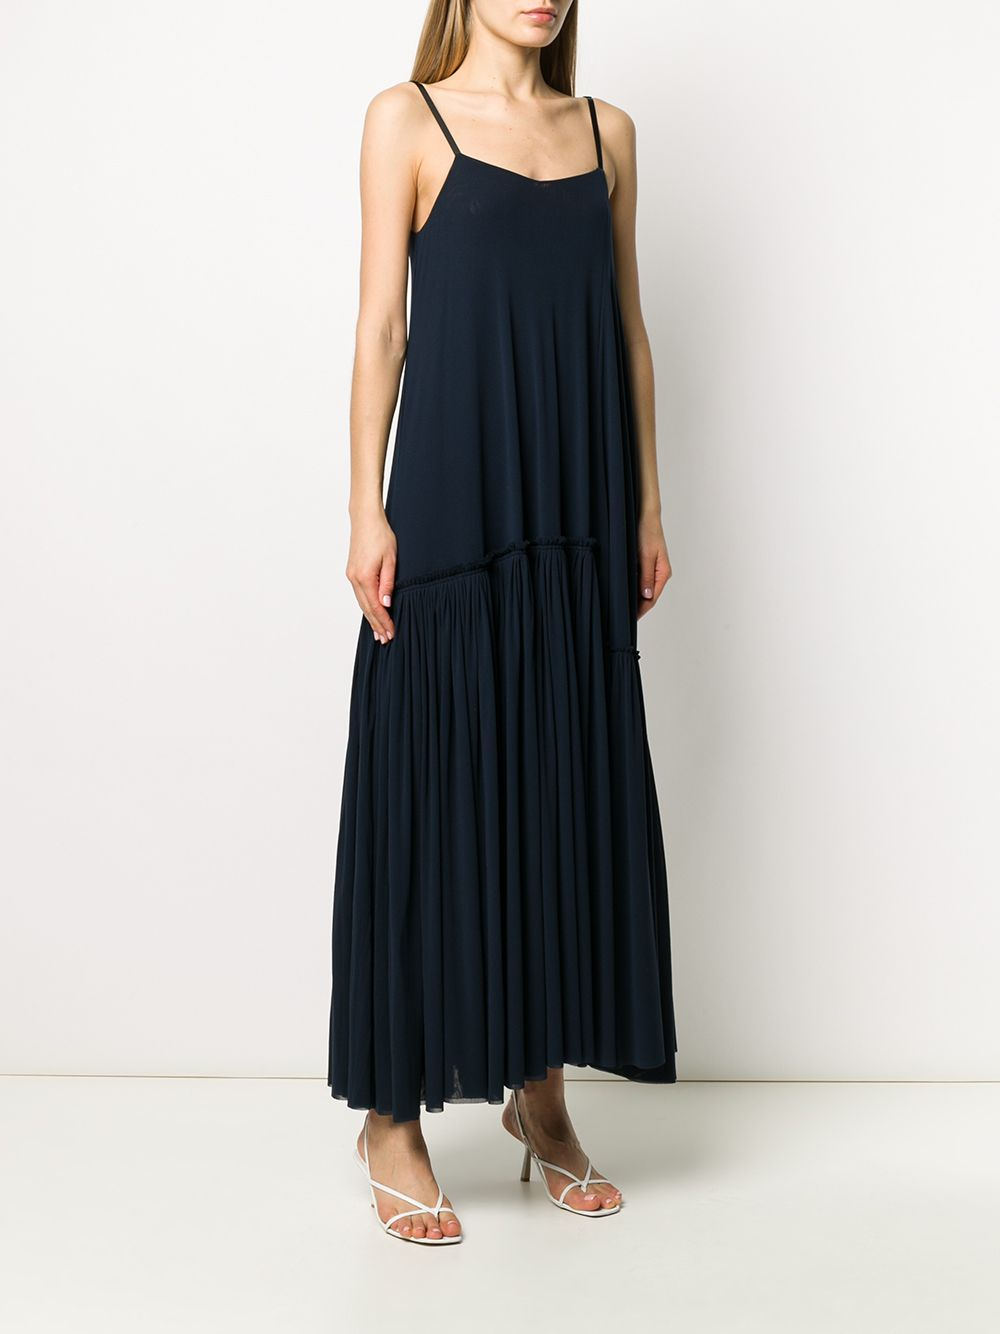 JIL SANDER Dress JIL SANDER | Dresses | JSCQ715014WQ467808415